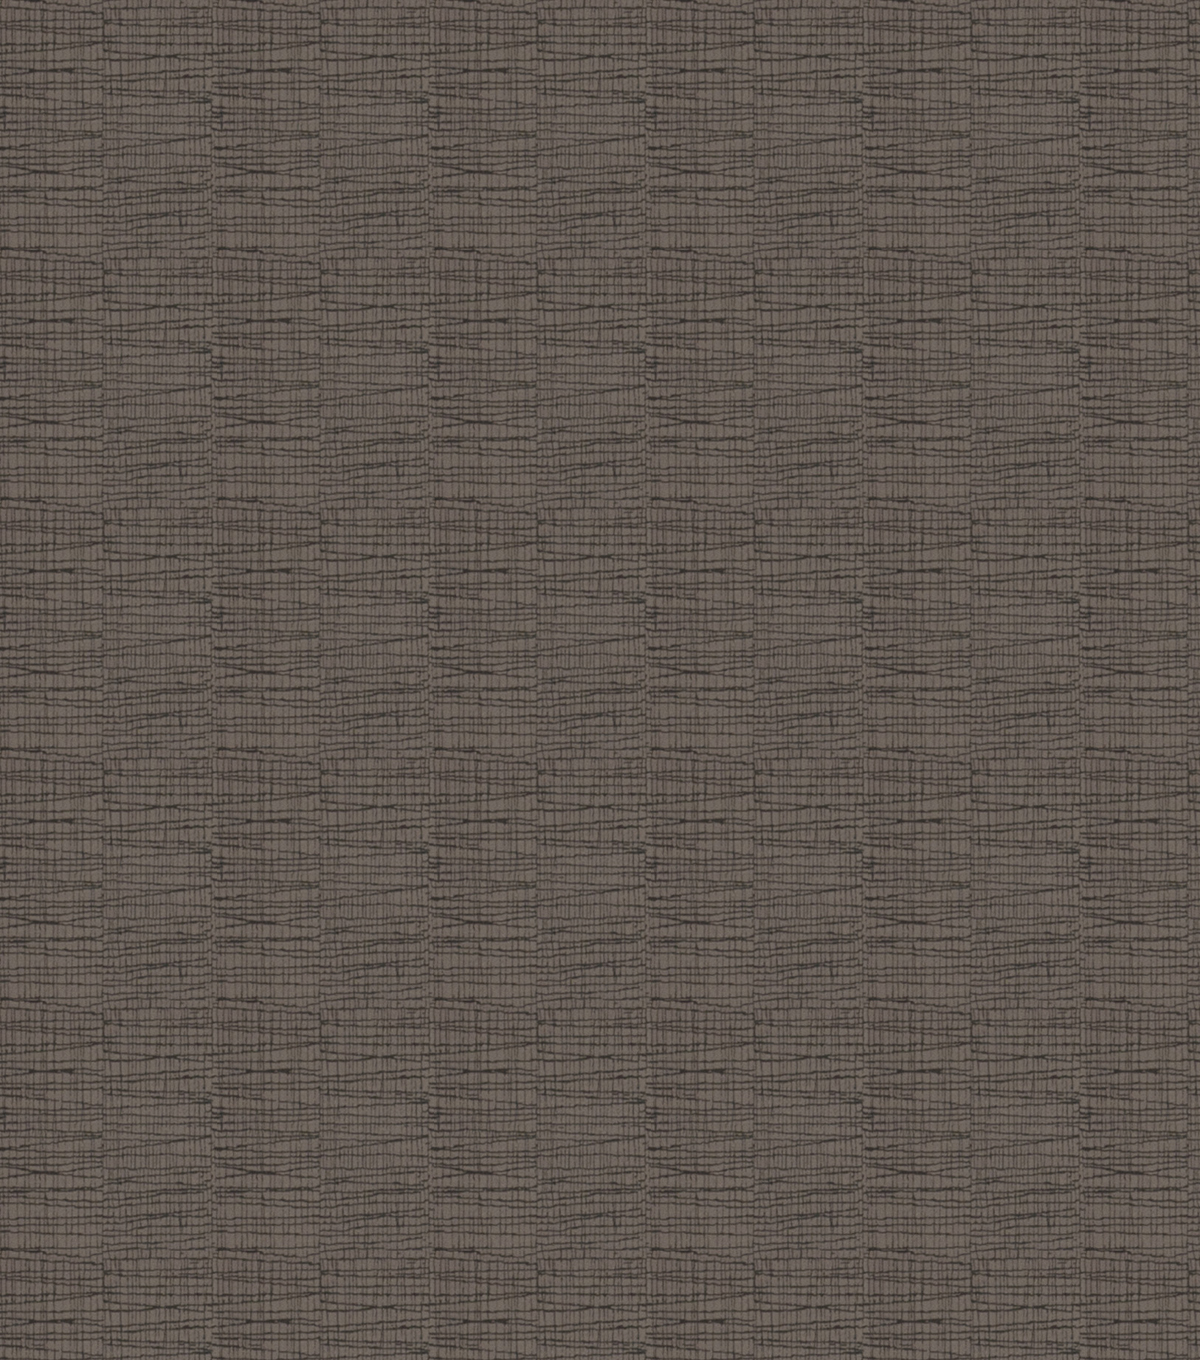 Eaton Square Upholstery Fabric-Prove/Charcoal